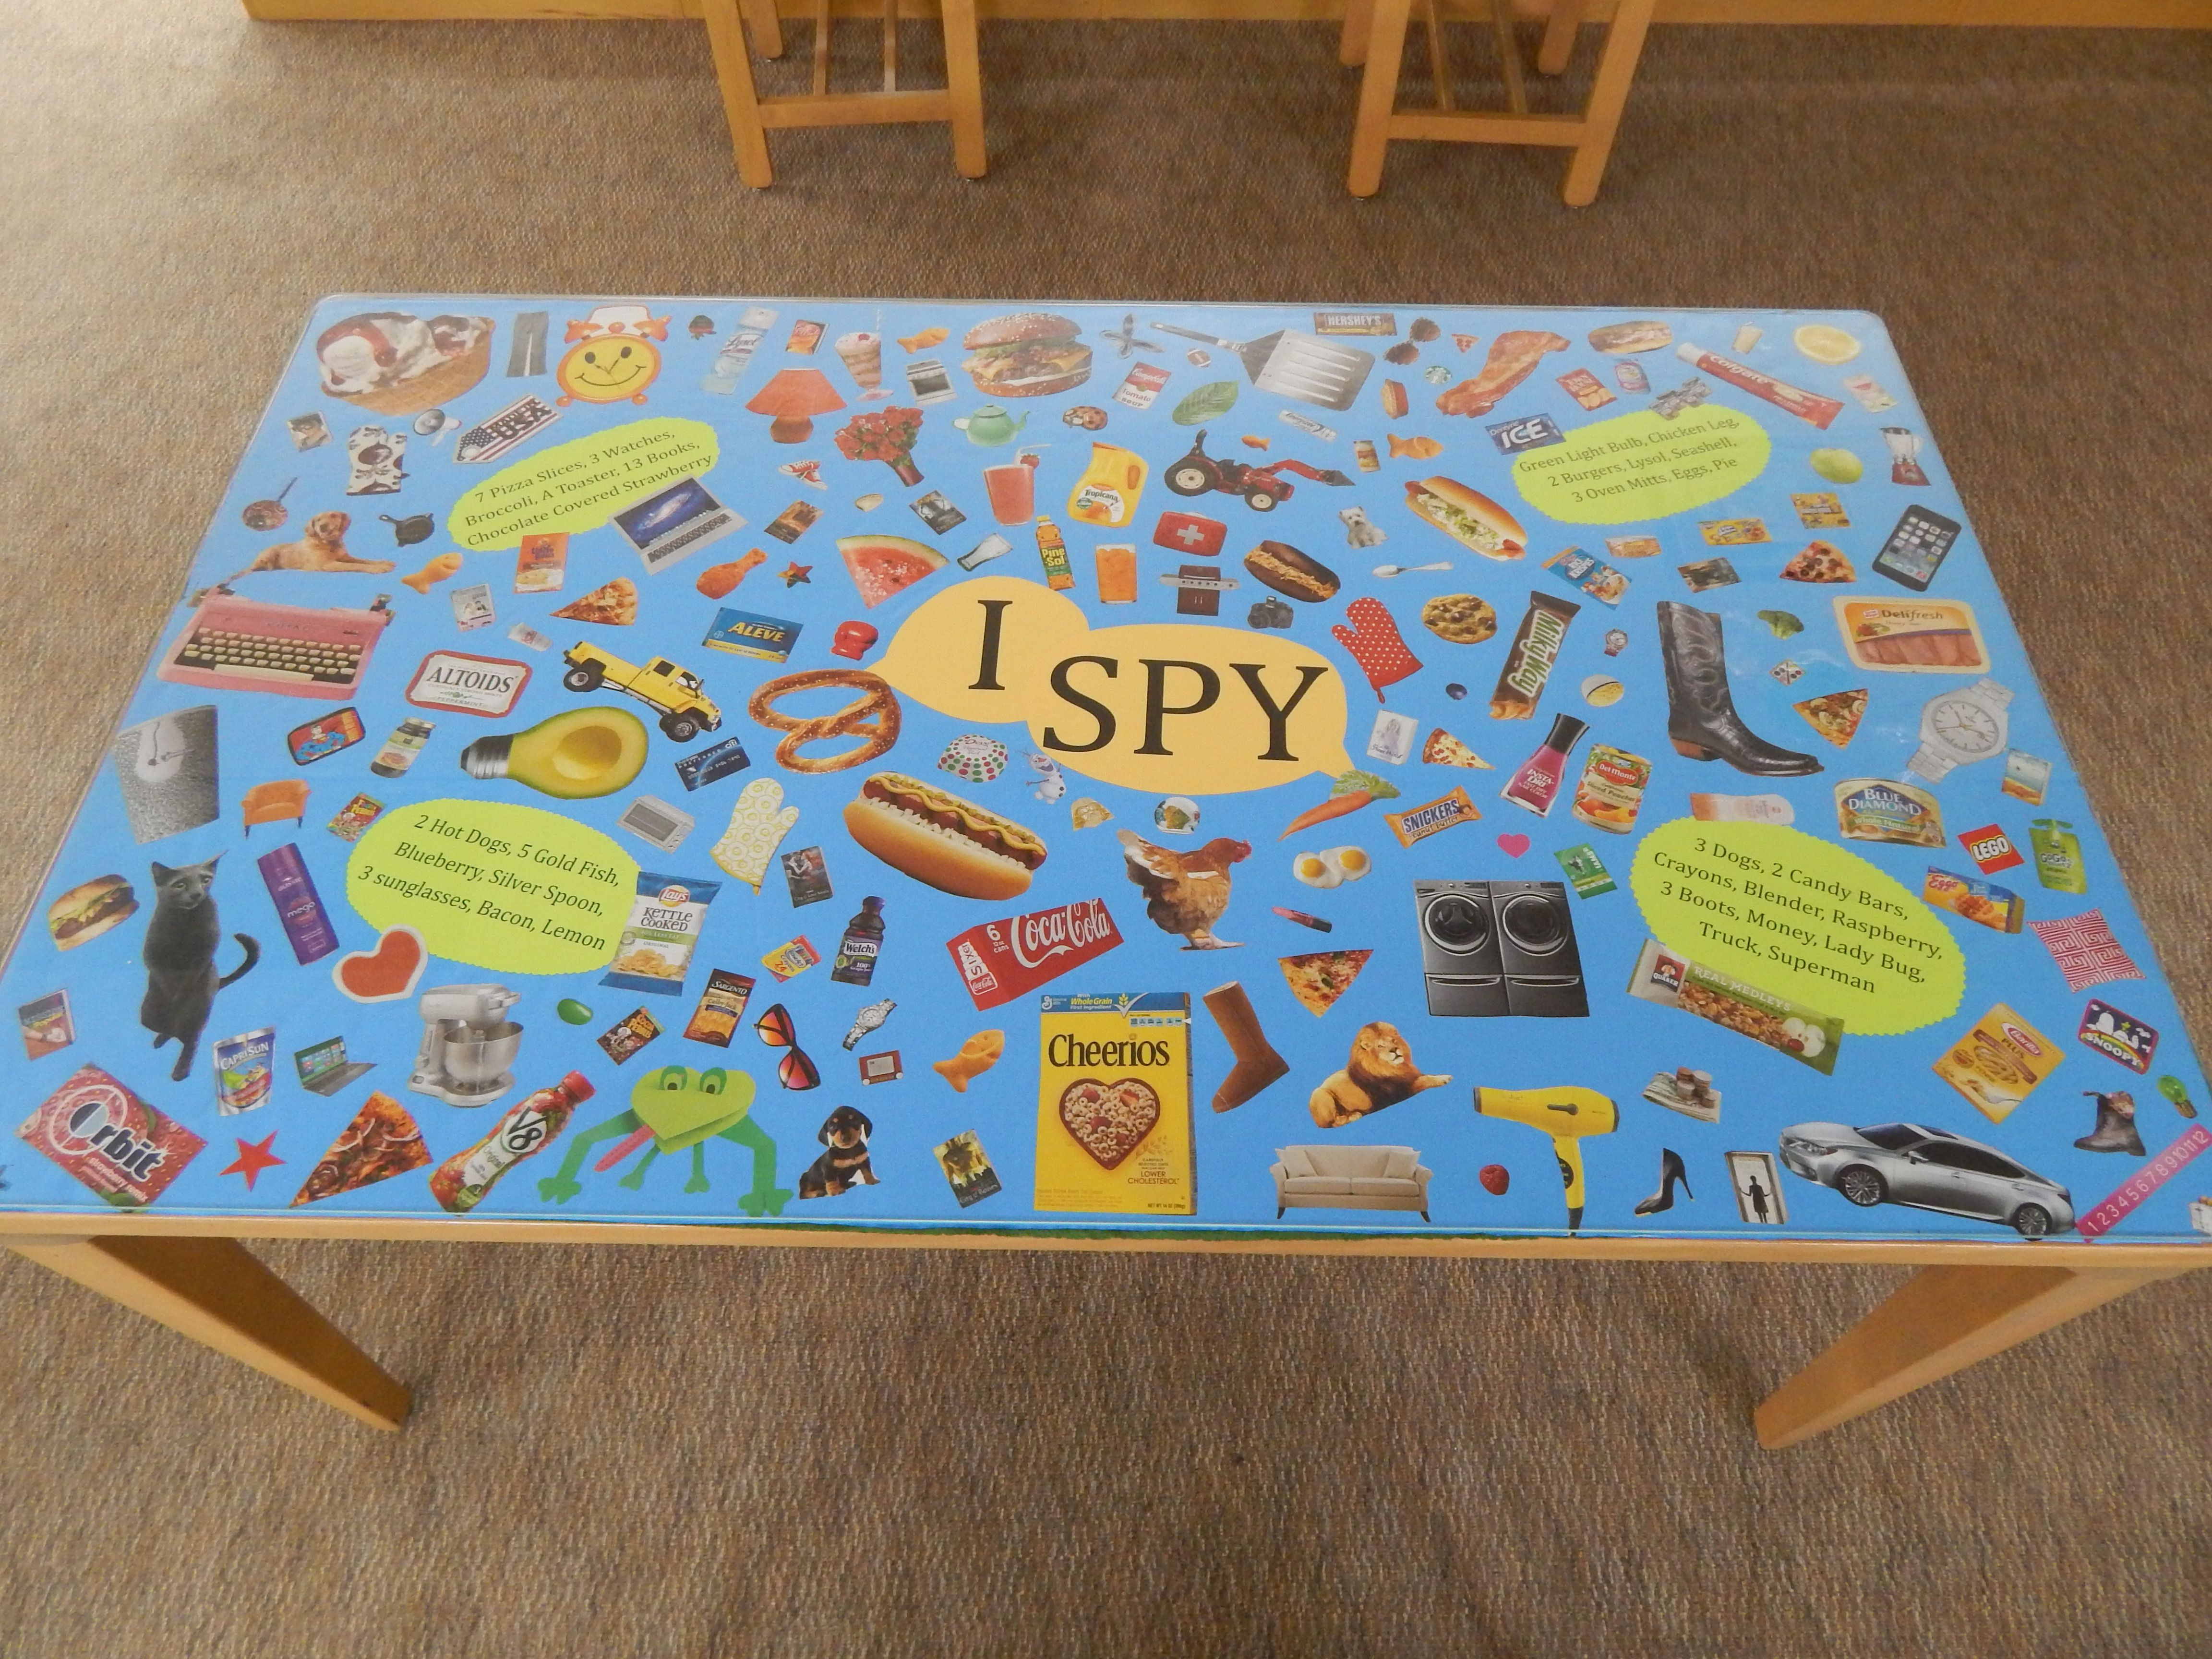 The I Spy Table In The Children S Section Chambers County Library